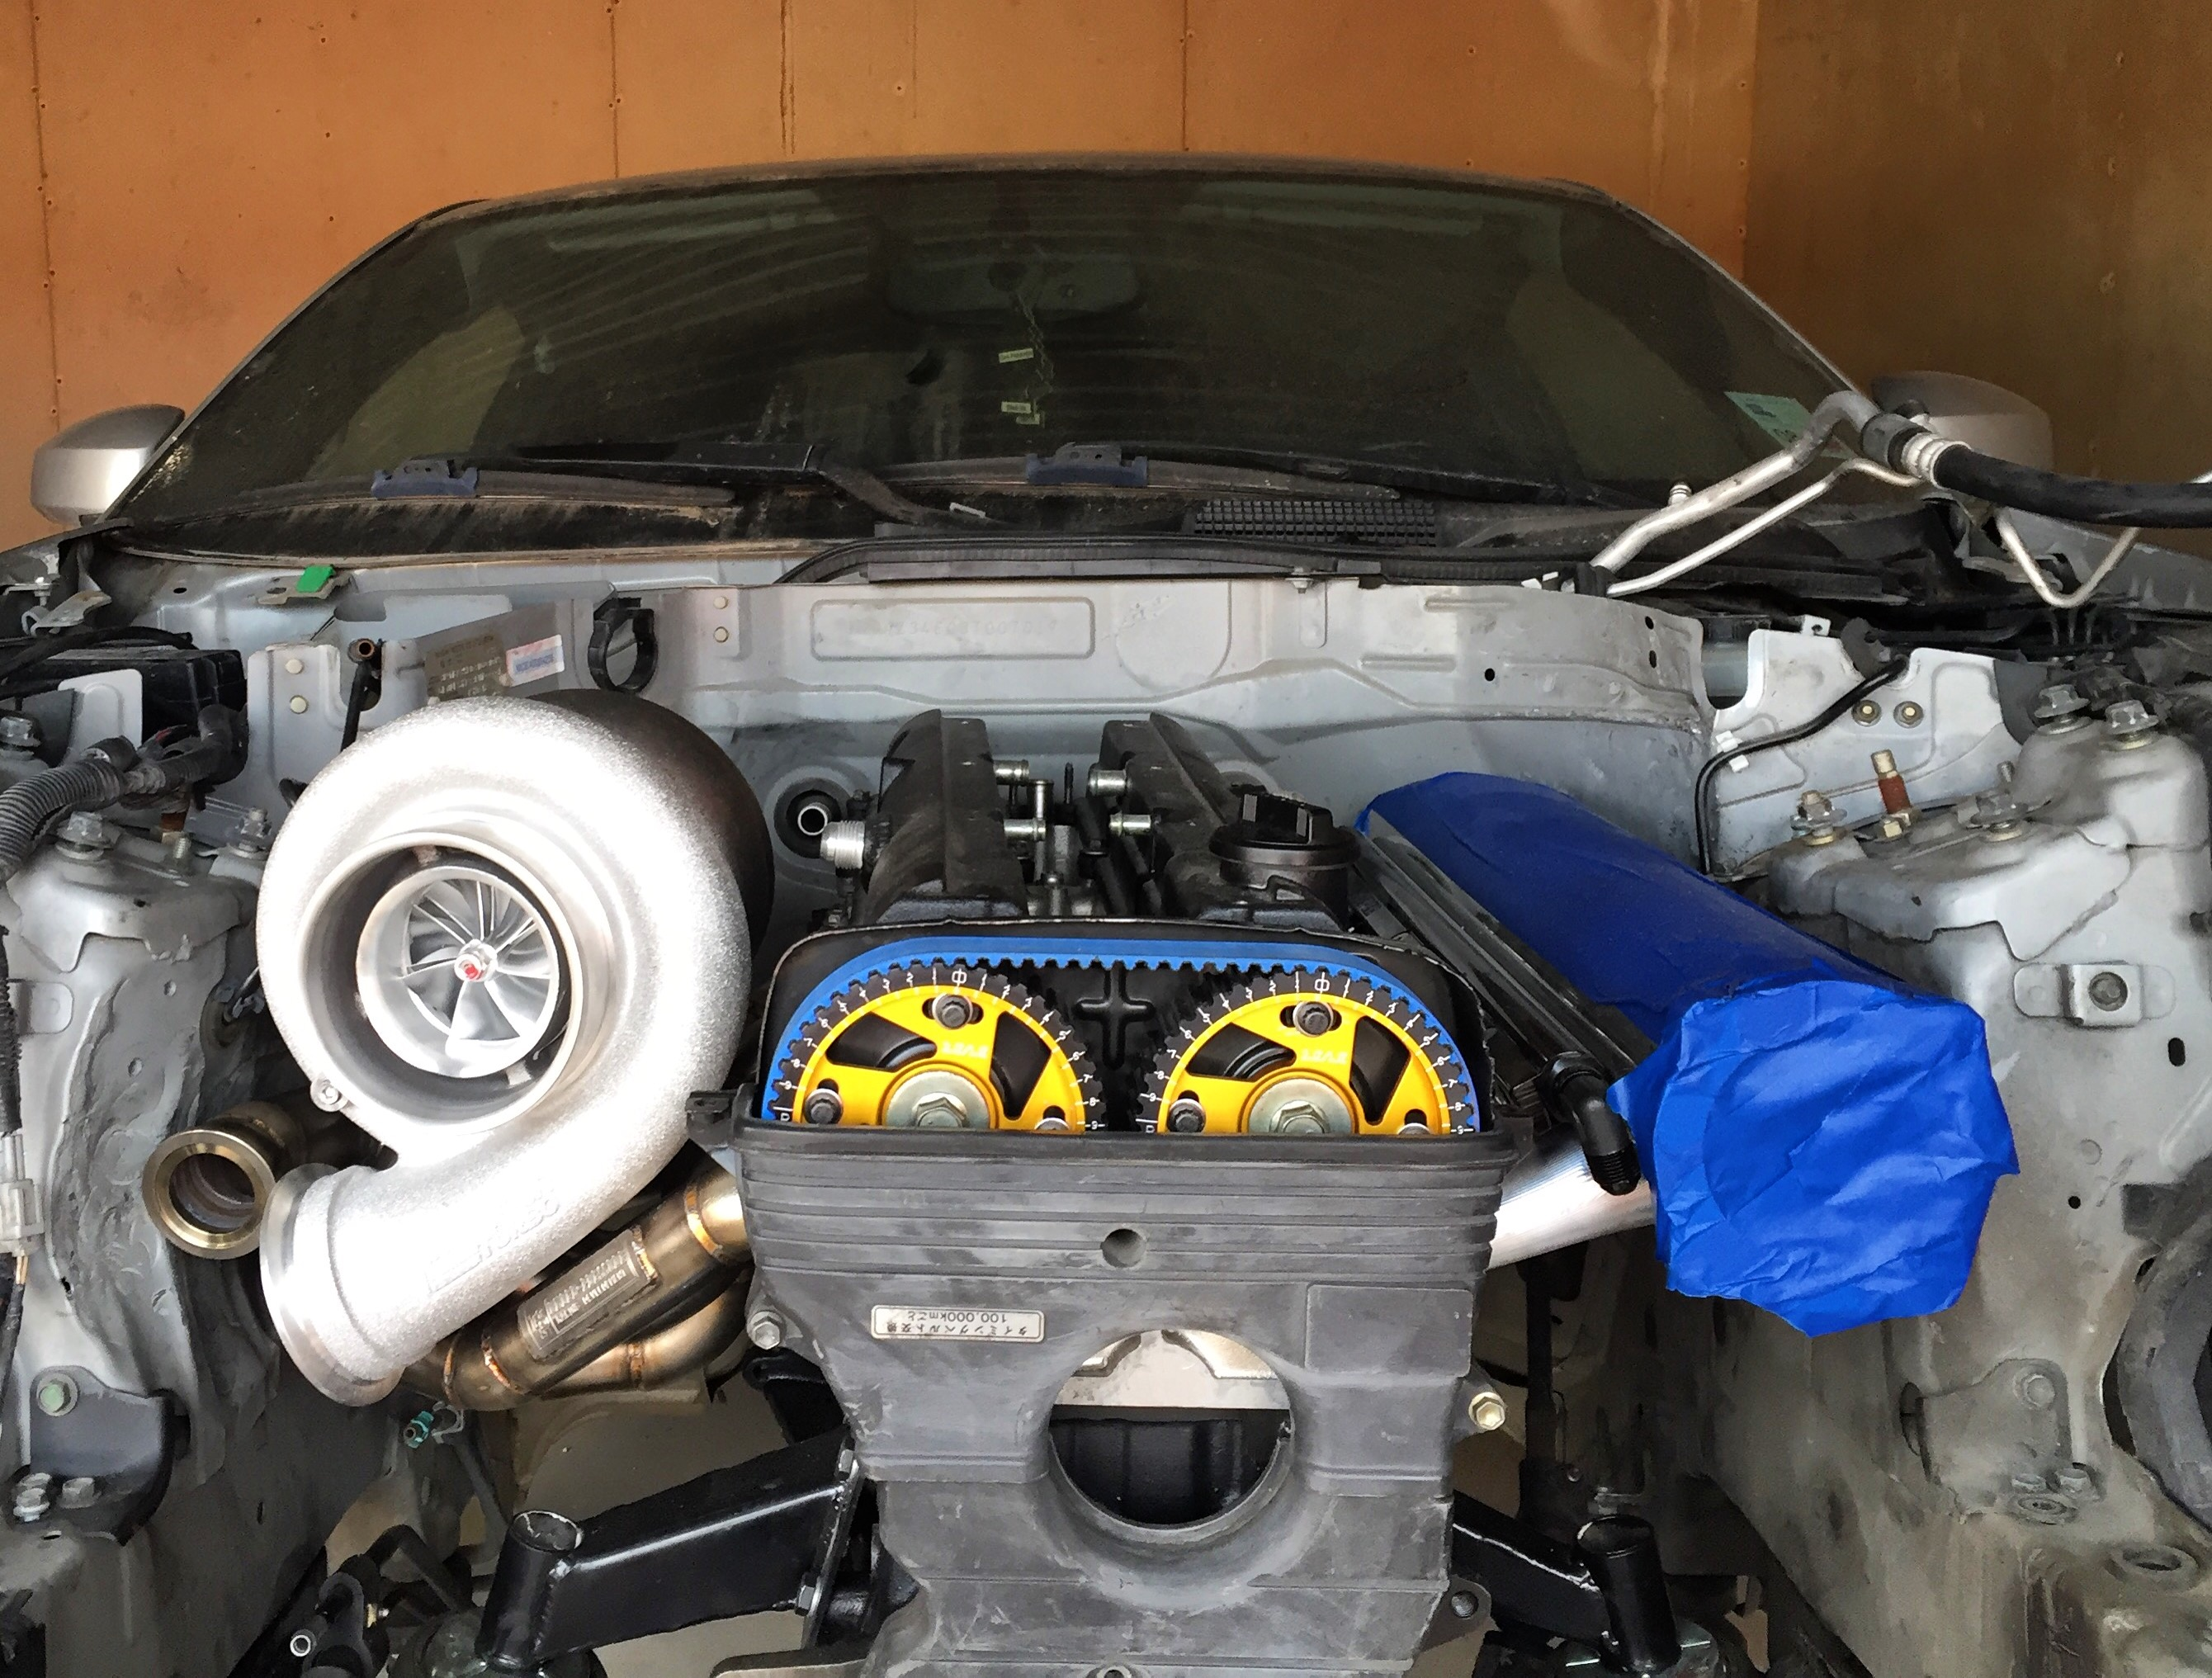 Chris Charles' 2JZ-Powered 350Z Takes The Path Less Travelled